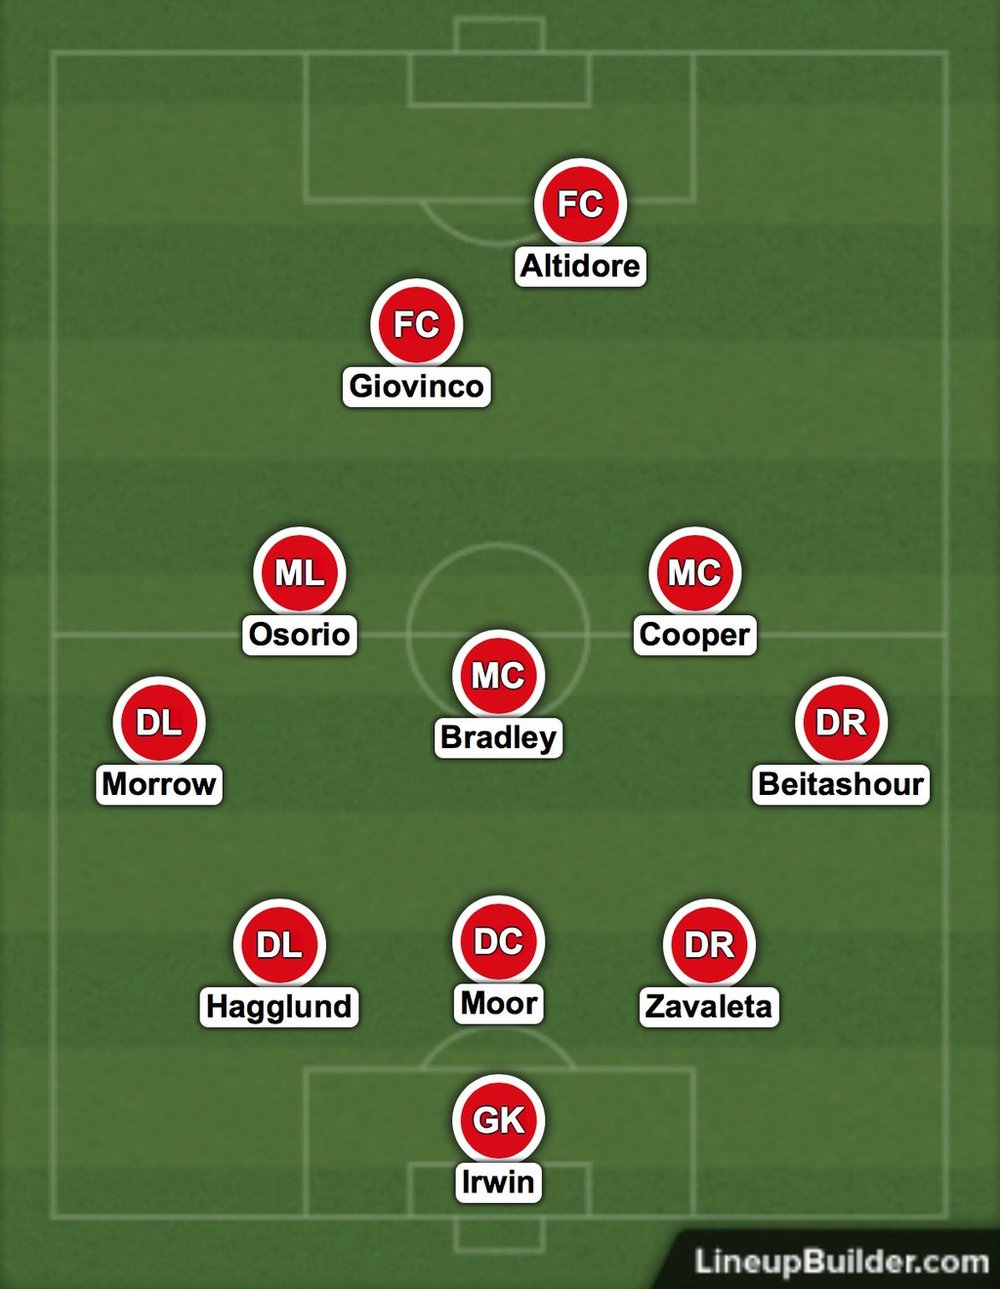 Toronto FC projected starting lineup as of Jan 31, 2017.